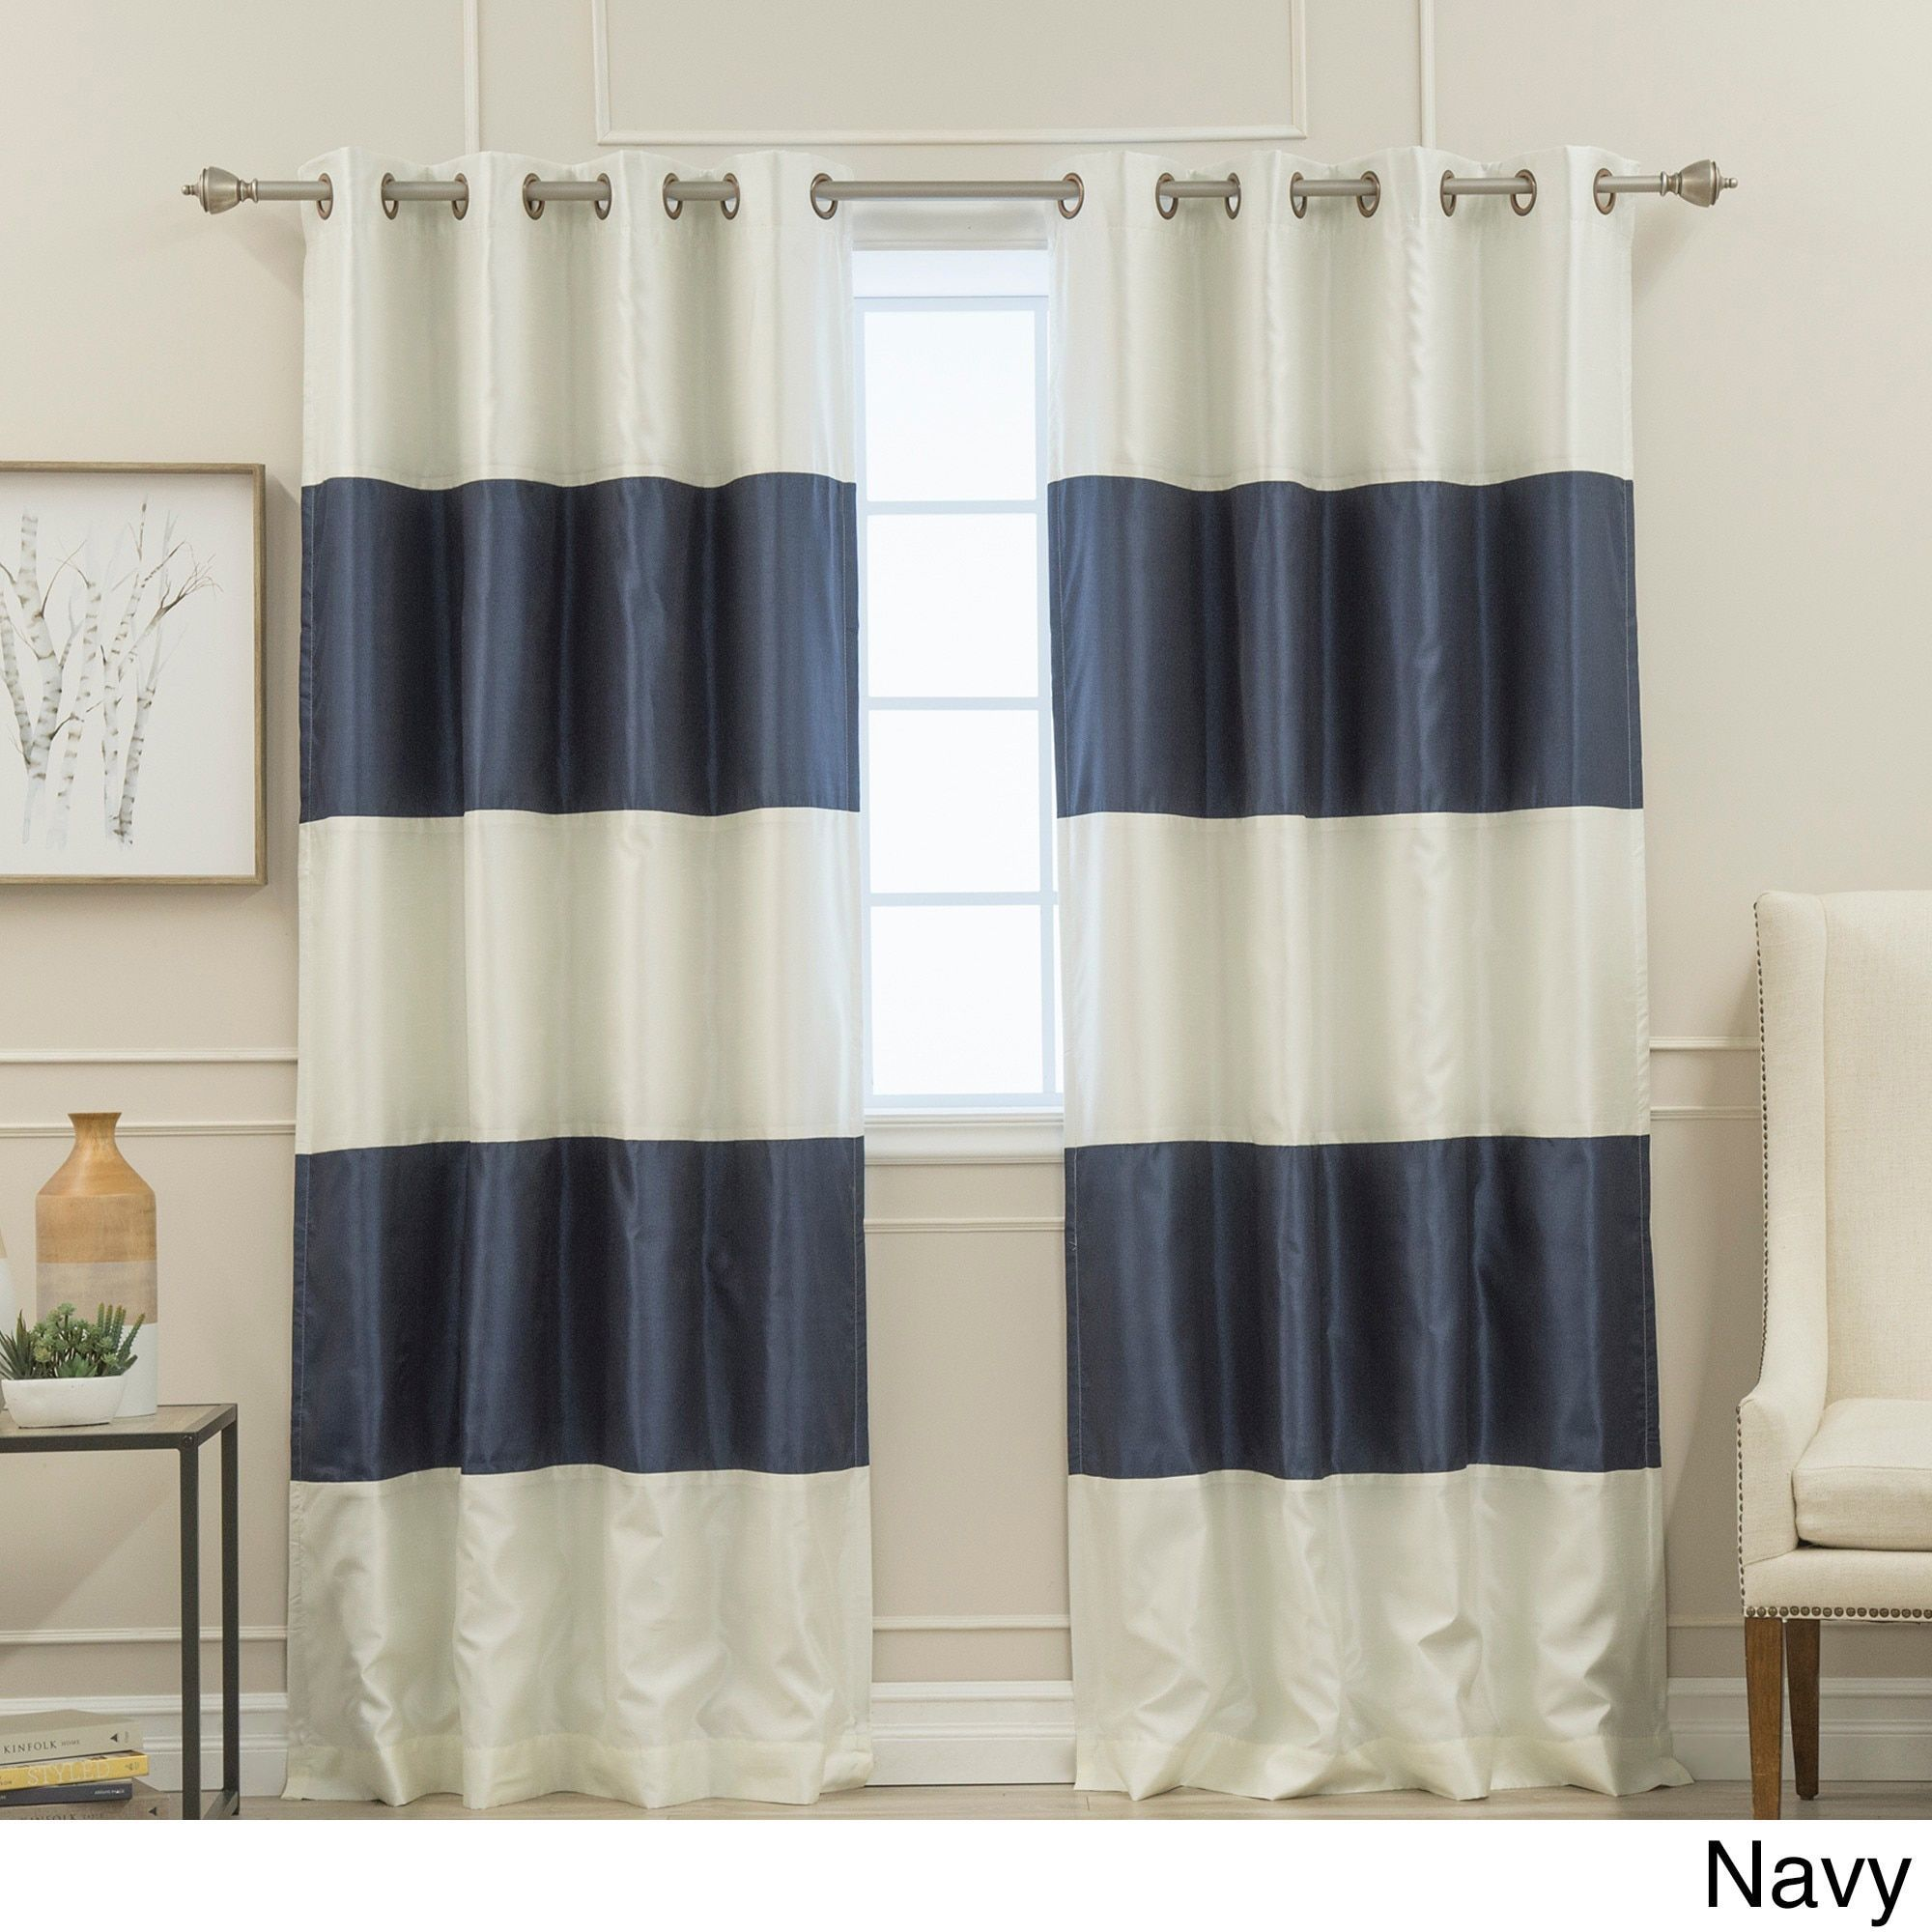 org striped panels avarii design grosgrain blackout home us ideas curtain best curtains nautica pocket rod instacurtainss thermal ribbon